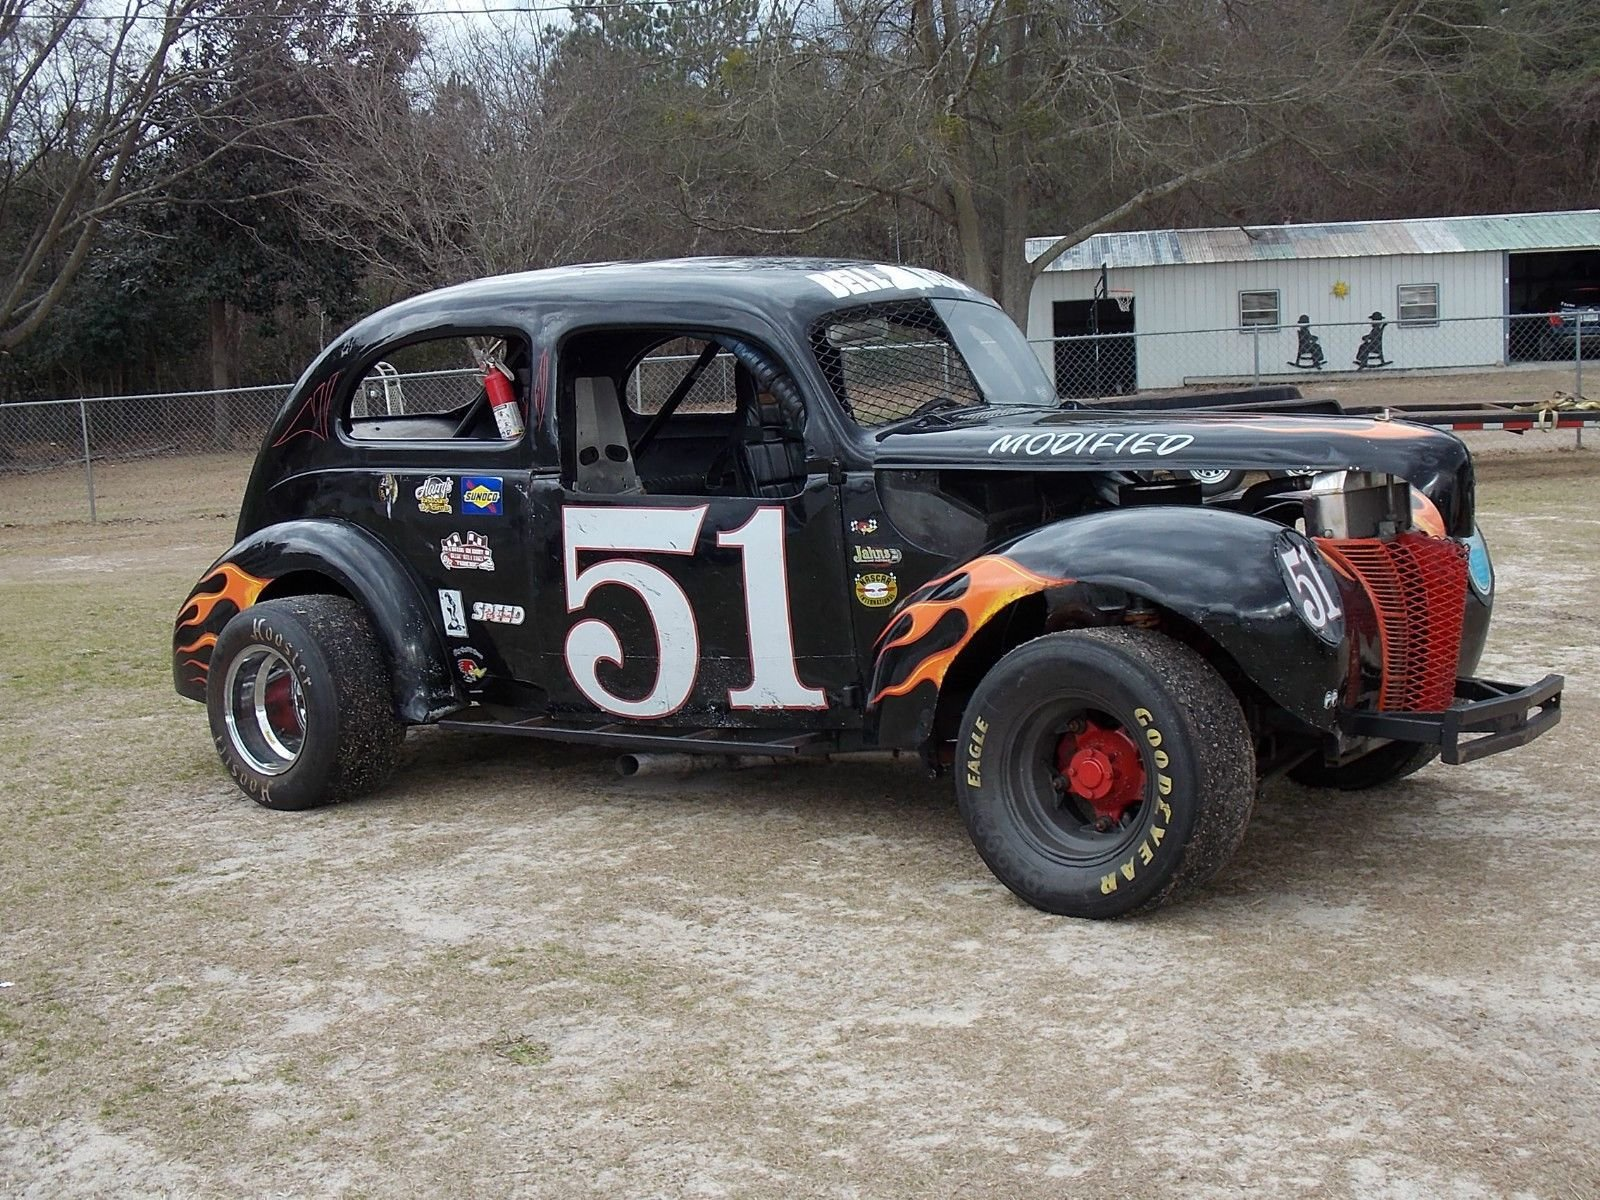 New 1940 Ford Sedan Race Car Vintage Circle Track For Sale In On This Month Original 1024 x 768